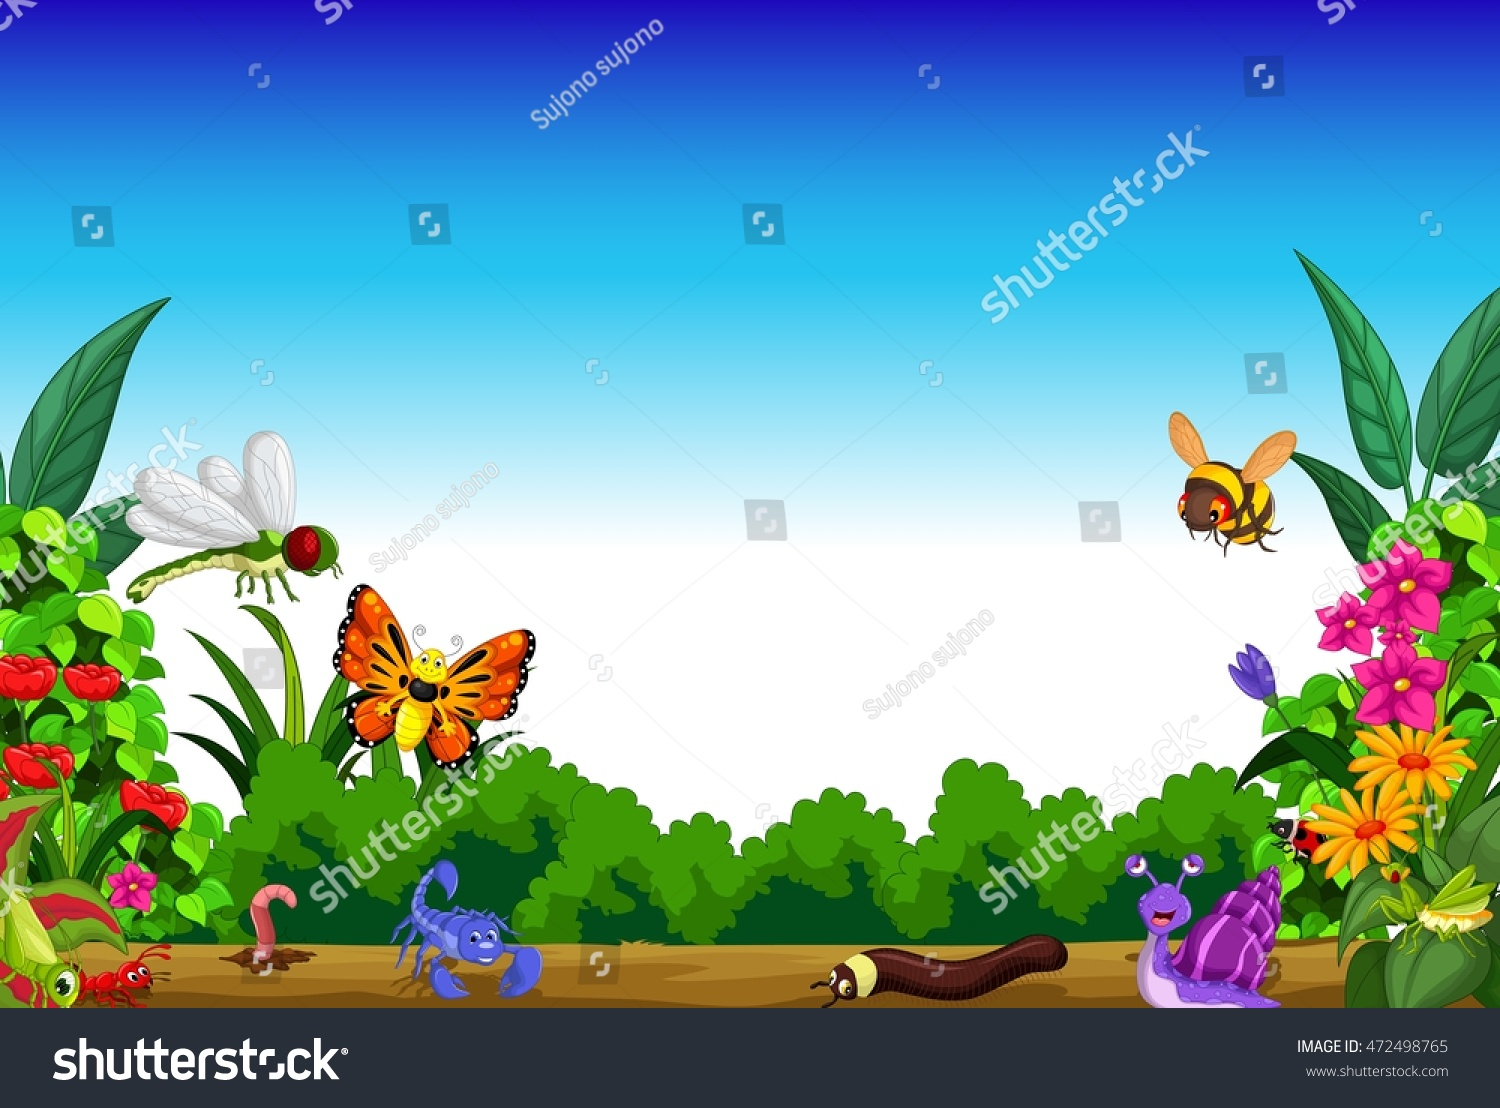 Flower garden cartoon - Collection Of Insects In The Flower Garden On Morning View